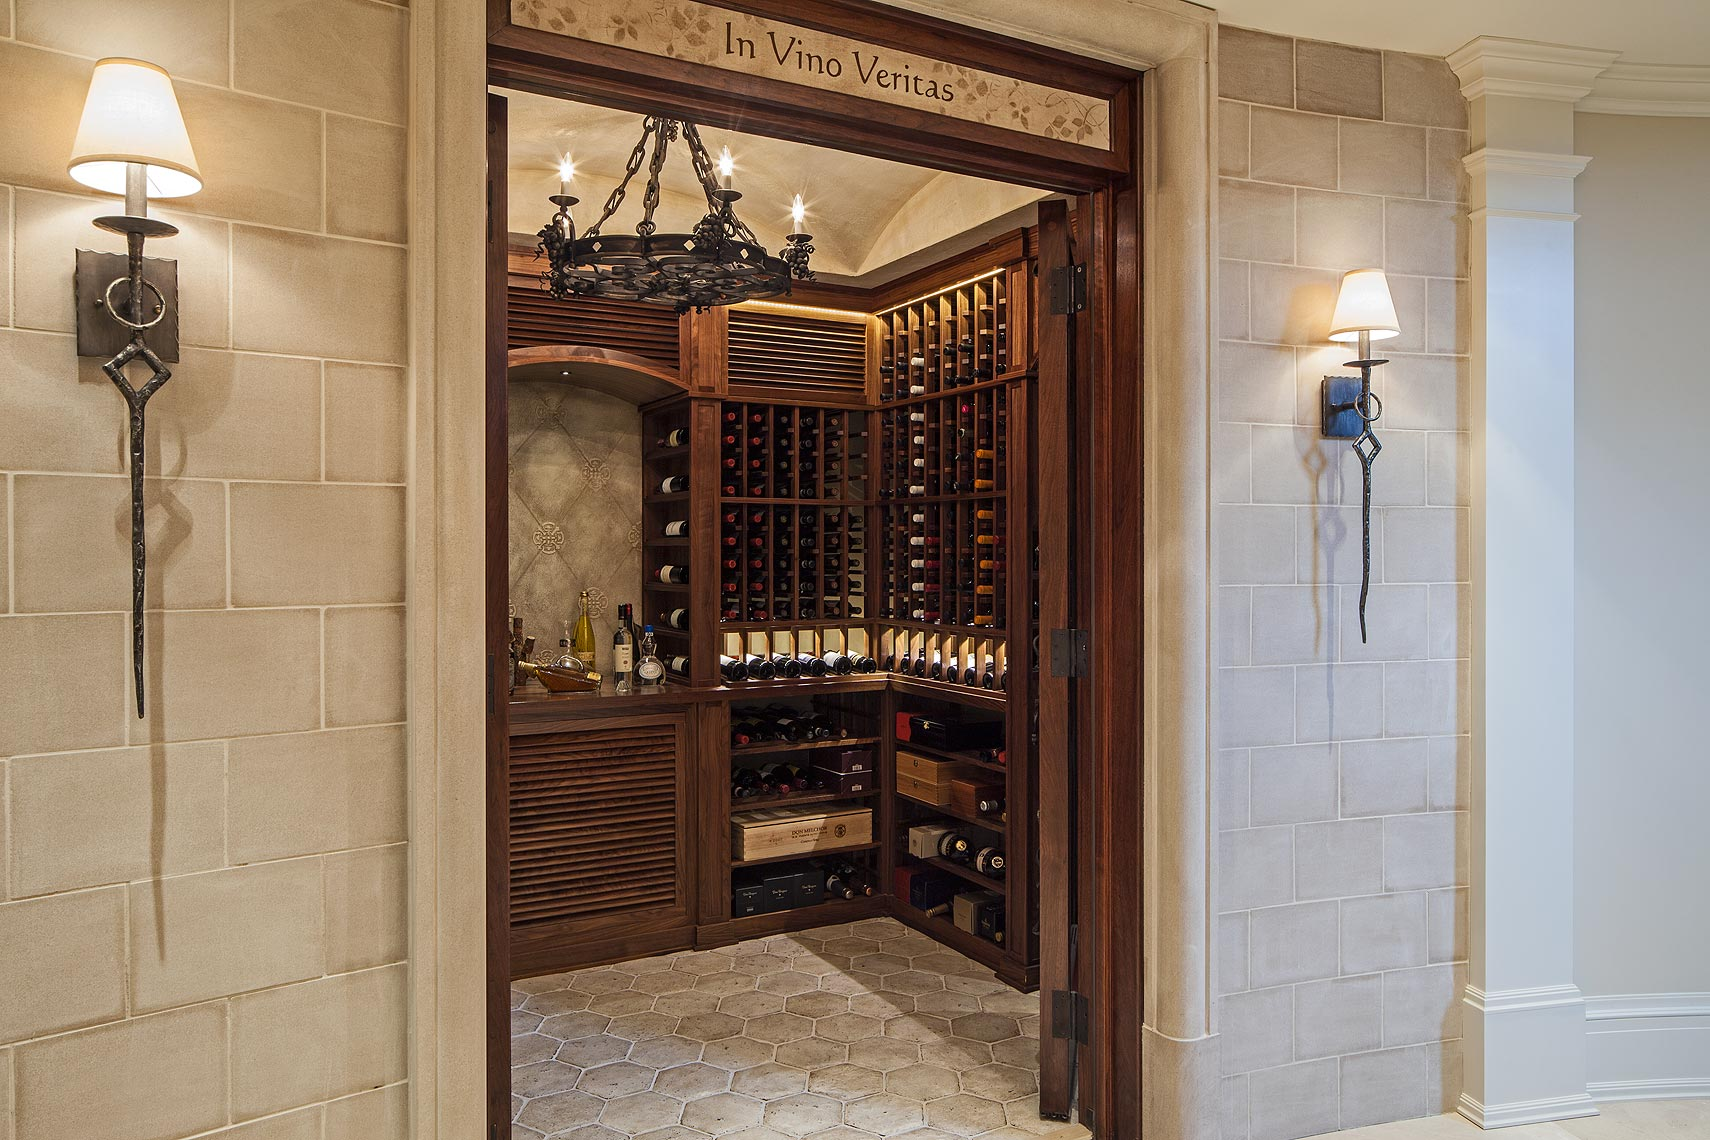 20-interiordesign-traditional-MakowArchitects-053-traditionalfrenchwinecellar